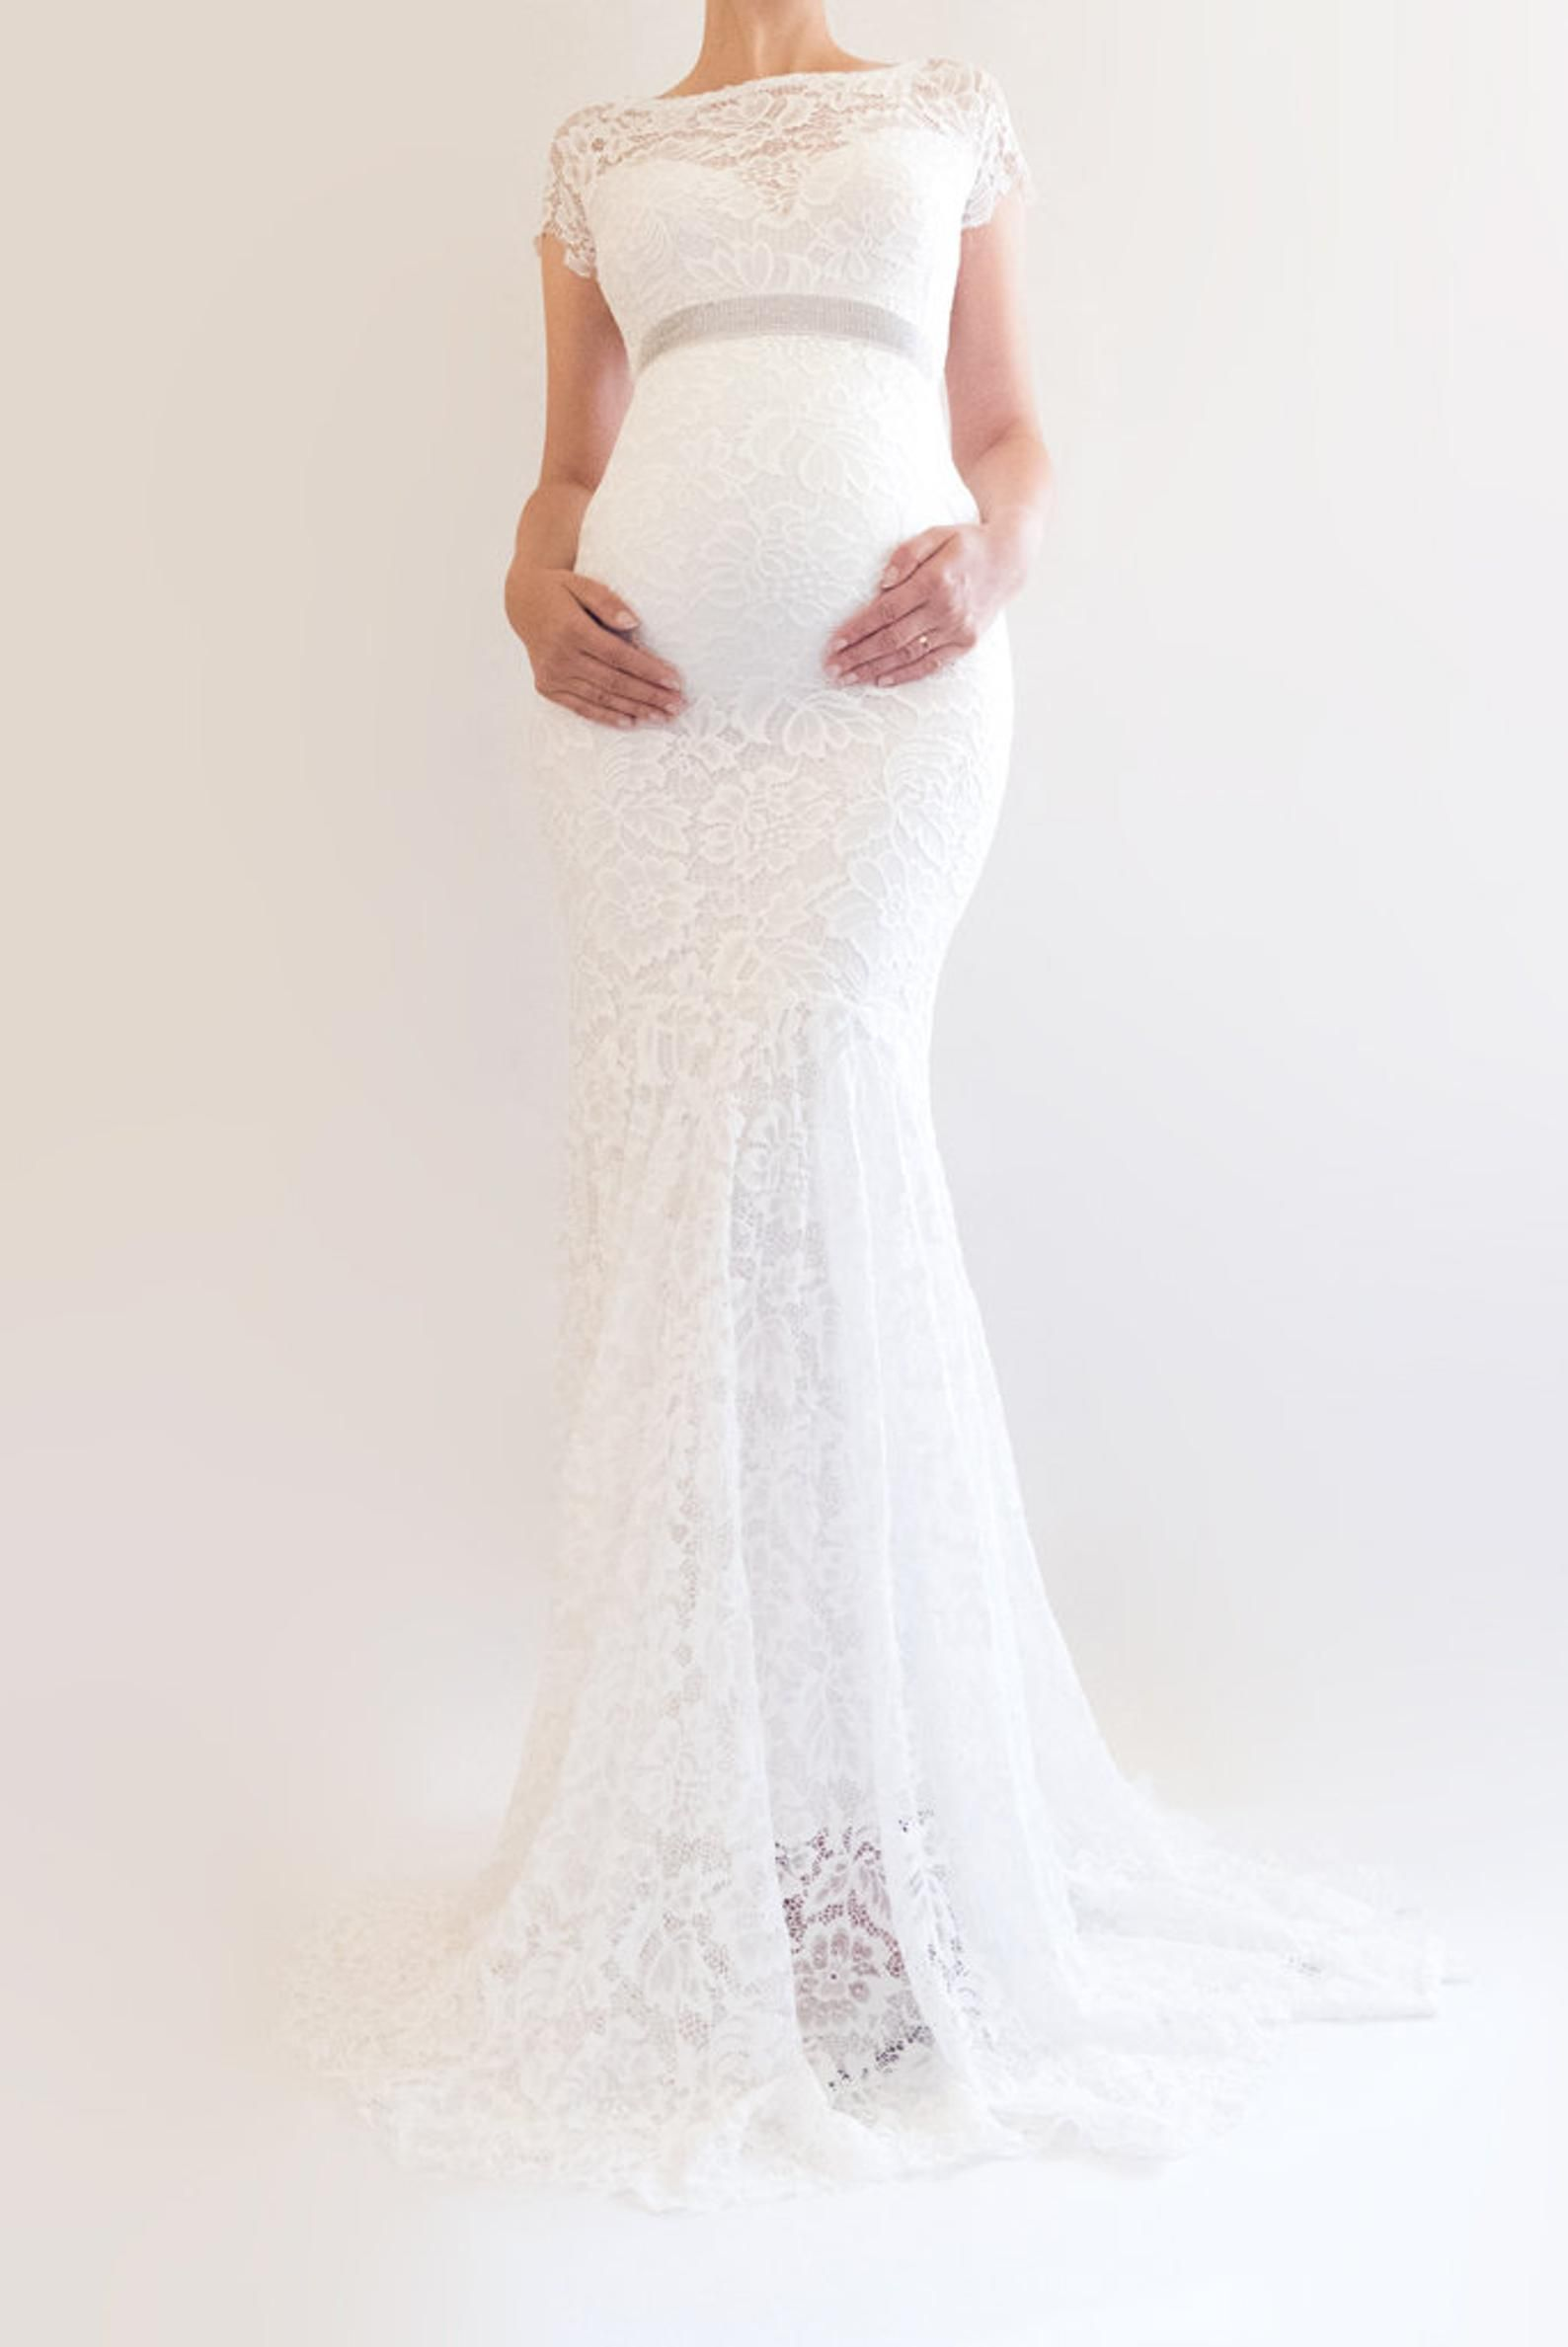 Briar Fitted Maternity Wedding Dress White Wedding Gown Lace This Beautiful White M Lace Maternity Wedding Dresses Modest Bridal Gowns Maternity Bridal Gowns